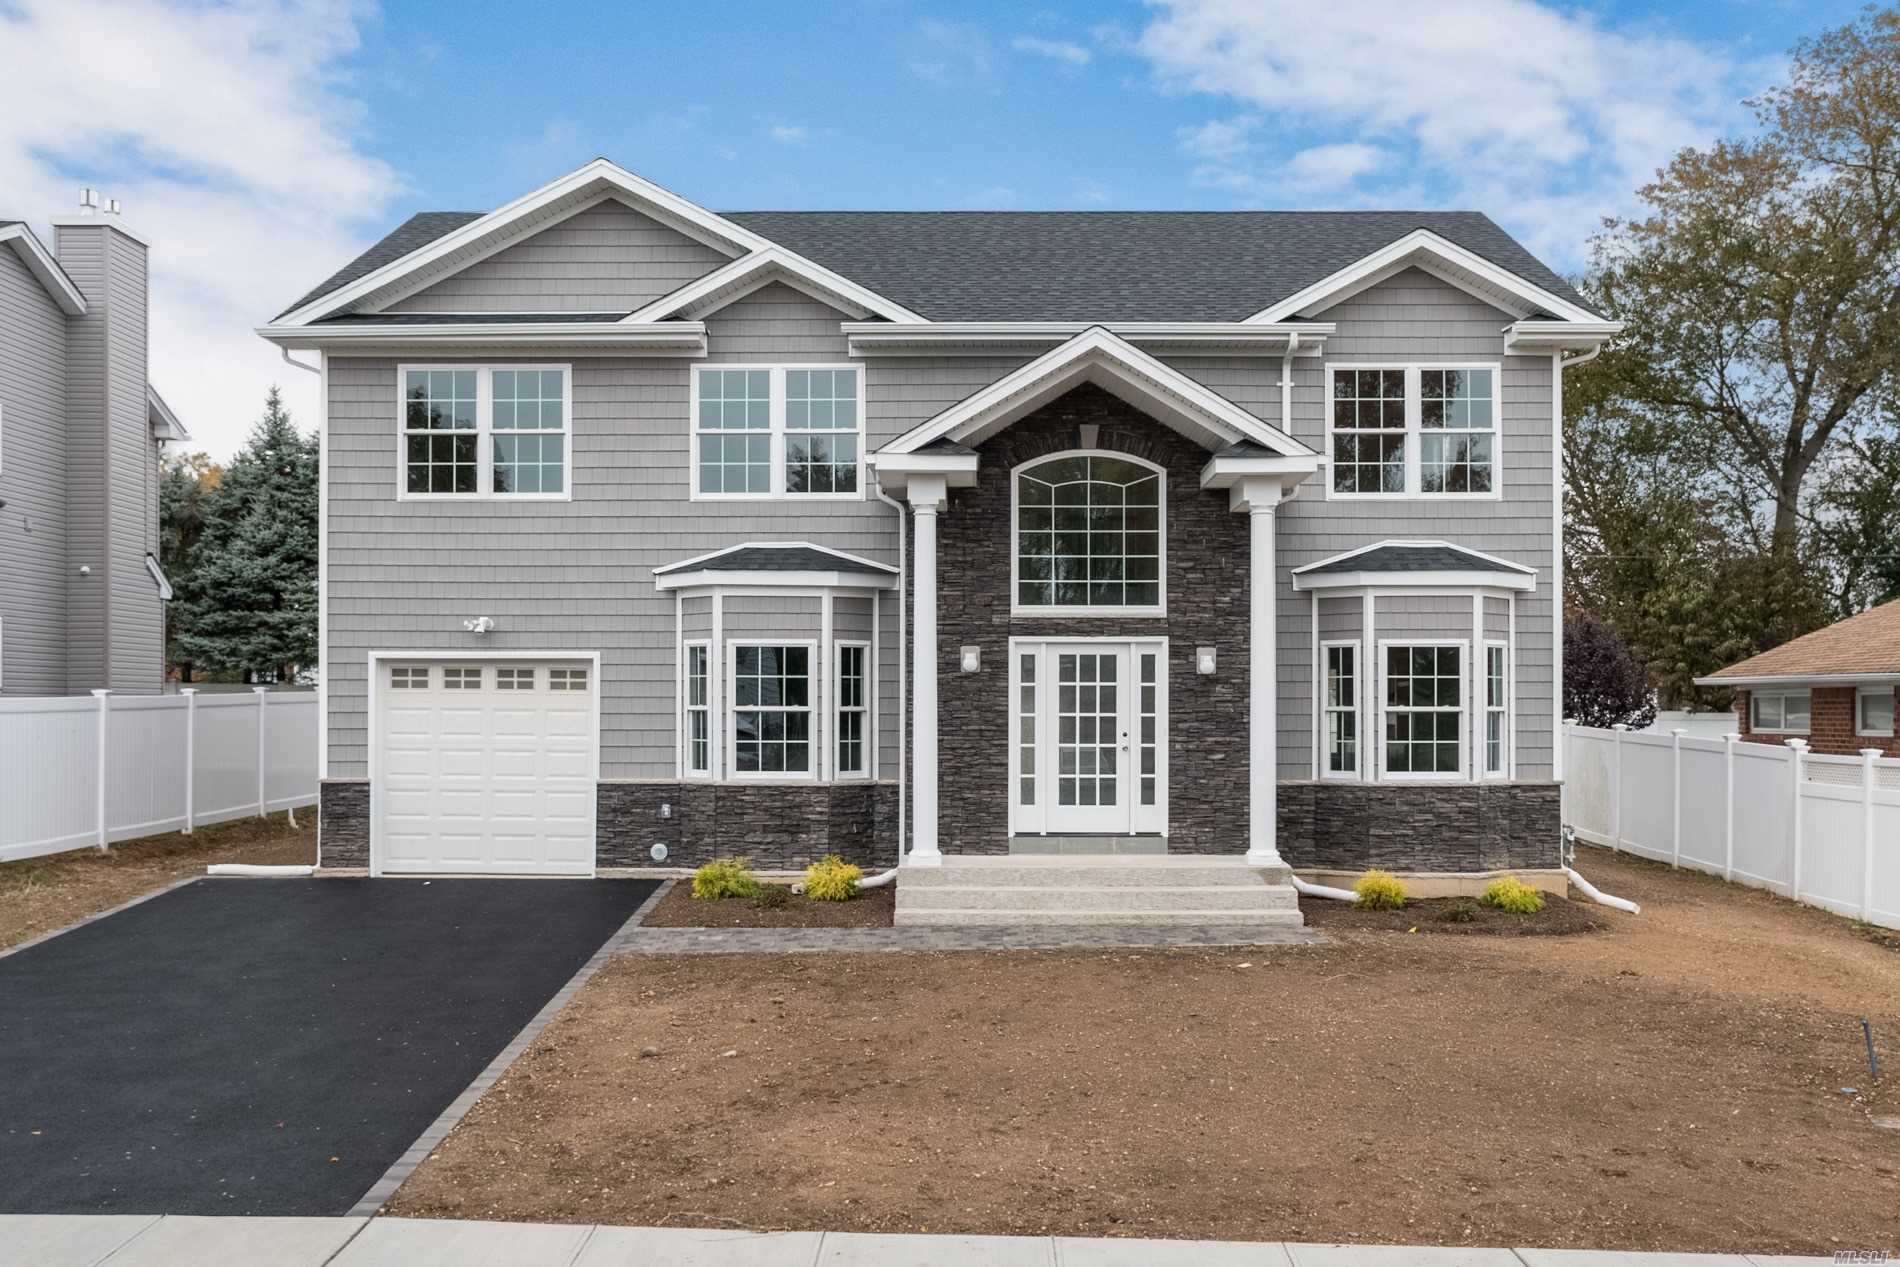 Currently Being Built! June Completion Date! Still Time To Customize!! Beautiful New Construction In Syosset Groves. South Grove Elementary. 5 Bedrooms, 4 1/2 Baths With Hardwood Floors. 9'Ft Basement Ceiling W Outside Entrance. 9' Ft Ceiling On First Fl. 1st Floor-Eat In Kitchen, Living Rm, Formal Dining Rm, 1/2 Bath, Great Rm W/ Gas Fireplace And Bedroom With Full Bath. 2nd Floor- Master Suite W Wic And Spa Bath, 3 Bdrm, 2 Full Baths & Laundry. Photos And Video Shown Are Not Exact.